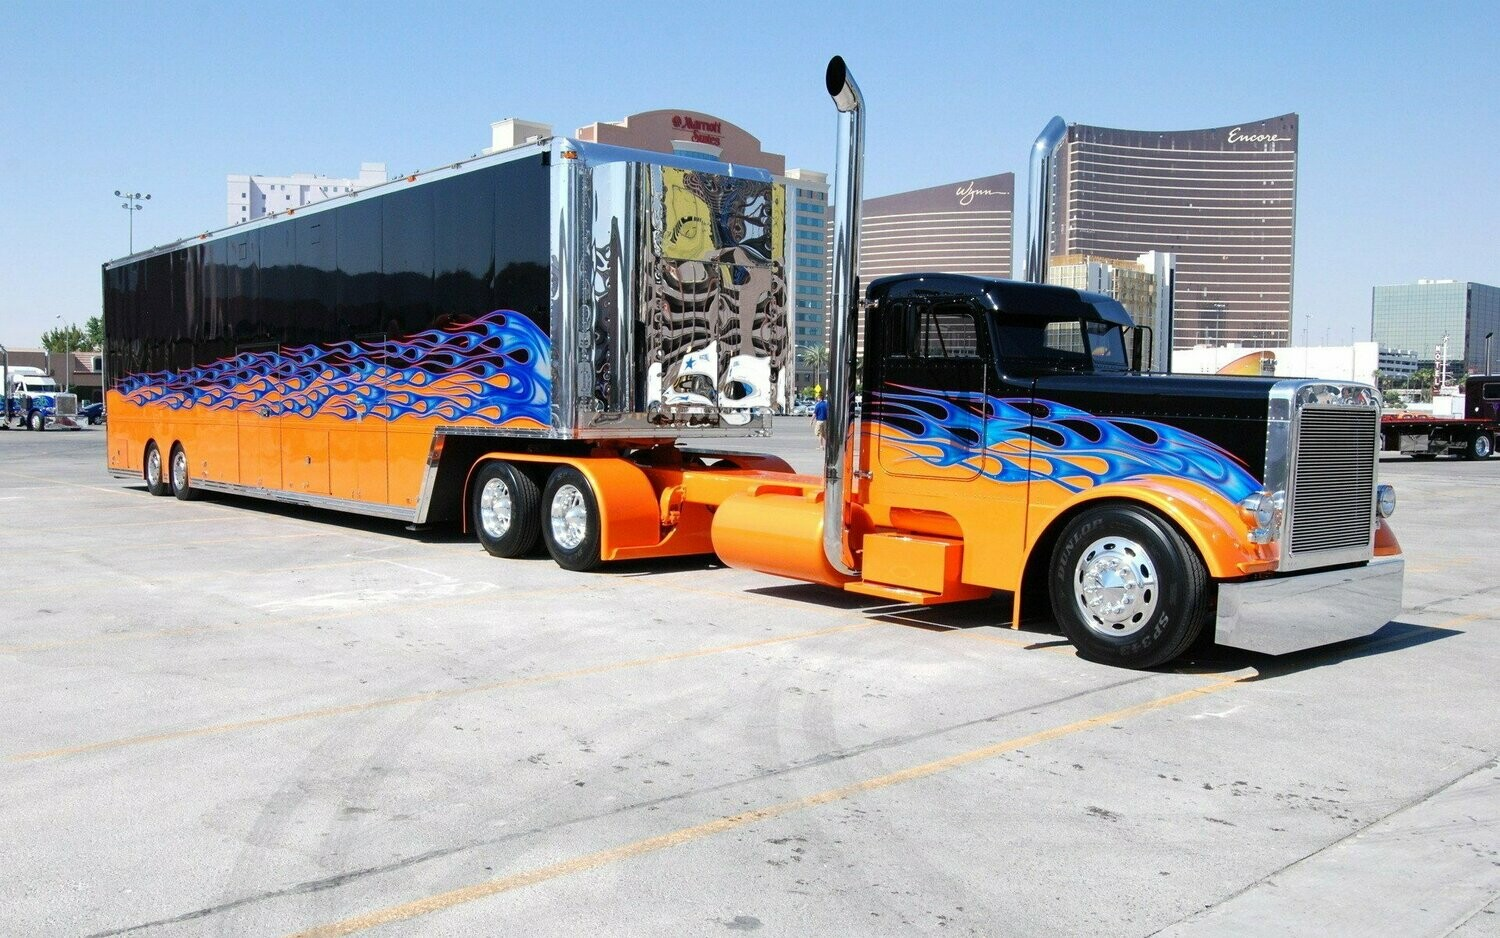 Big Trucks 12 - Full Drill Diamond Painting - Specially ordered for you. Delivery is approximately 4 - 6 weeks.